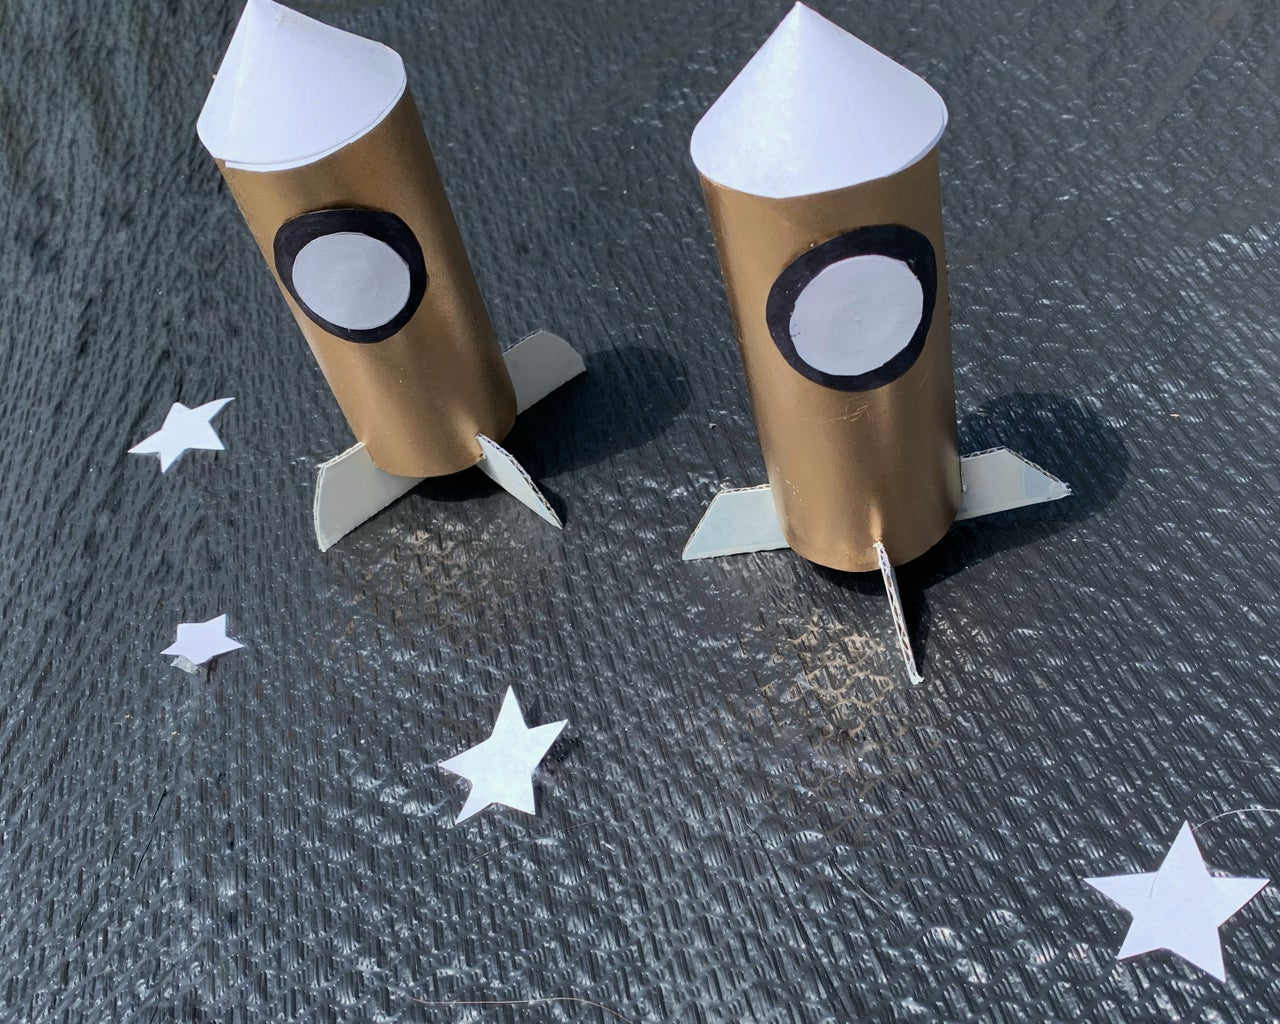 Recycled Toilet Paper Roll Rocket